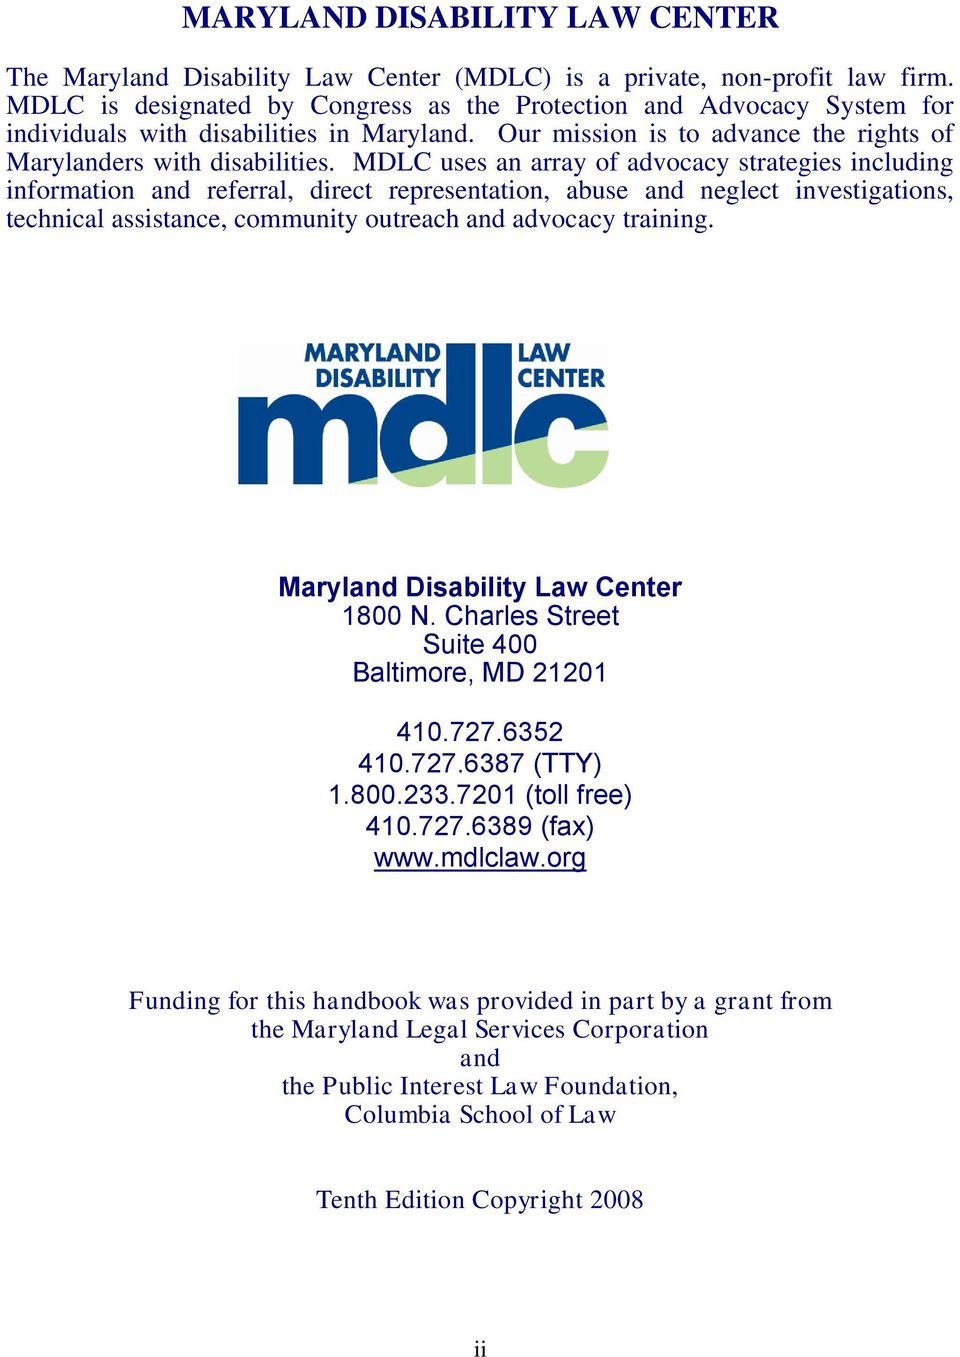 MDLC uses an array of advocacy strategies including information and referral, direct representation, abuse and neglect investigations, technical assistance, community outreach and advocacy training.